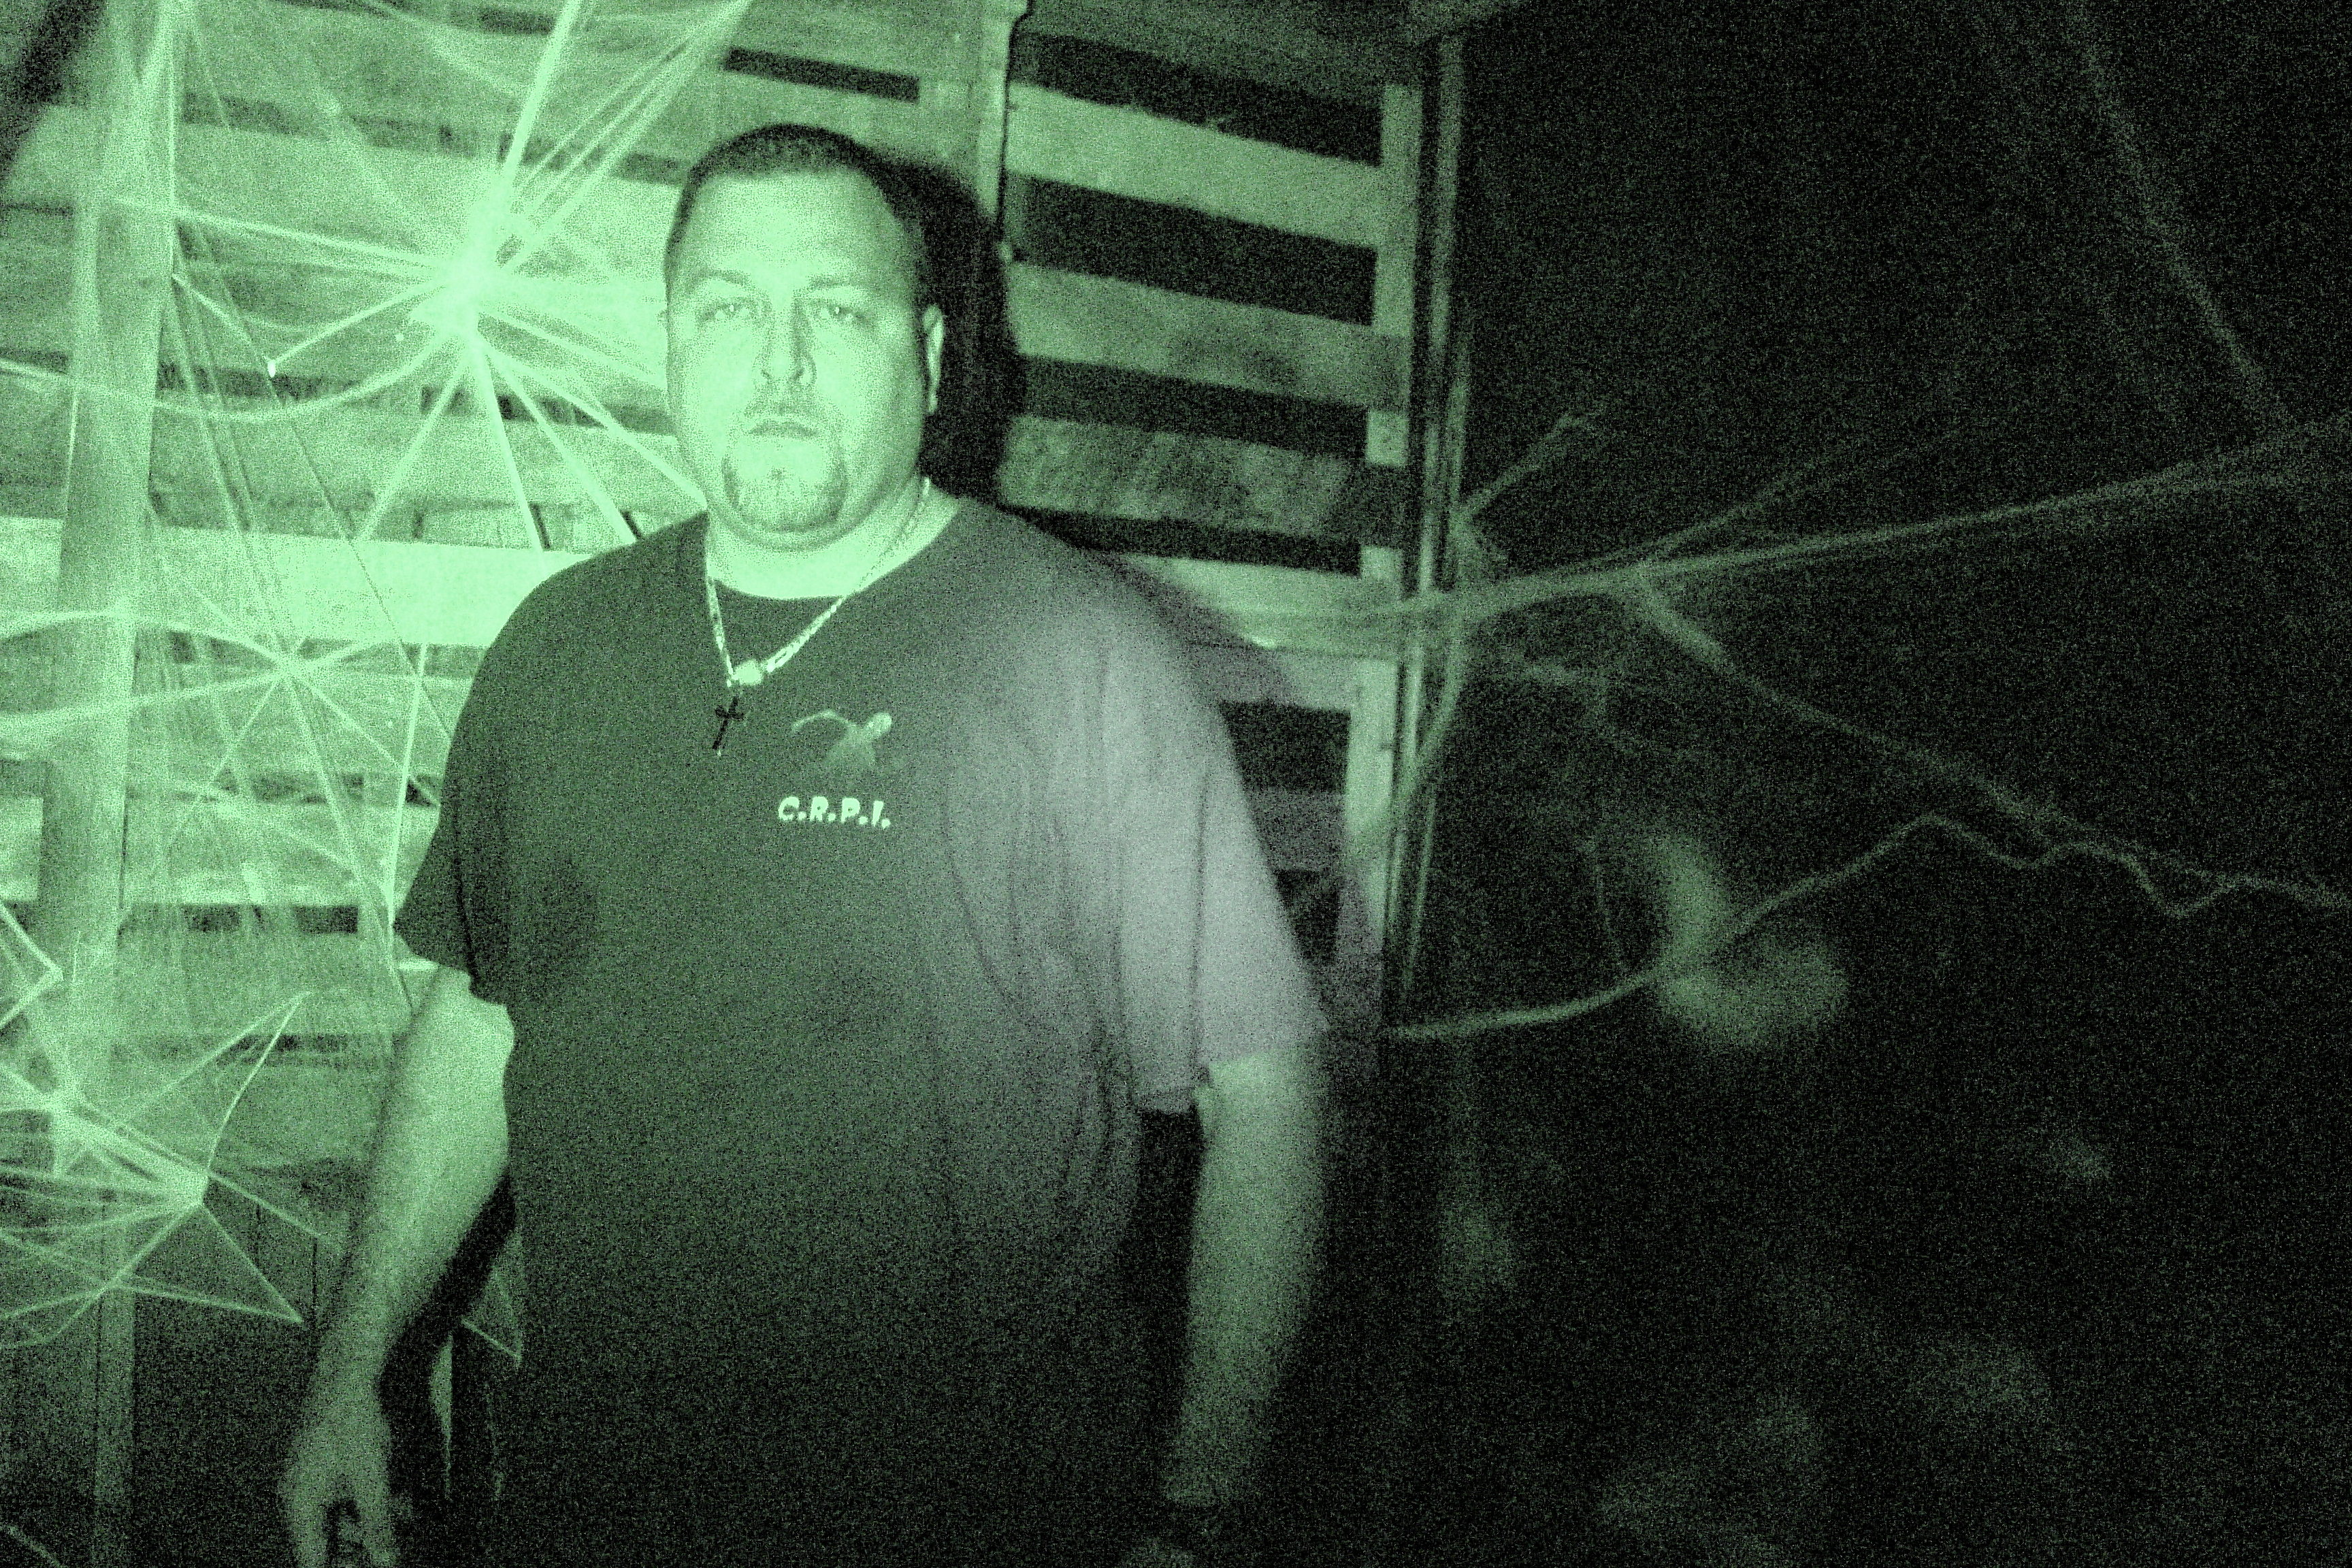 Dave_at_haunted_barn.jpg